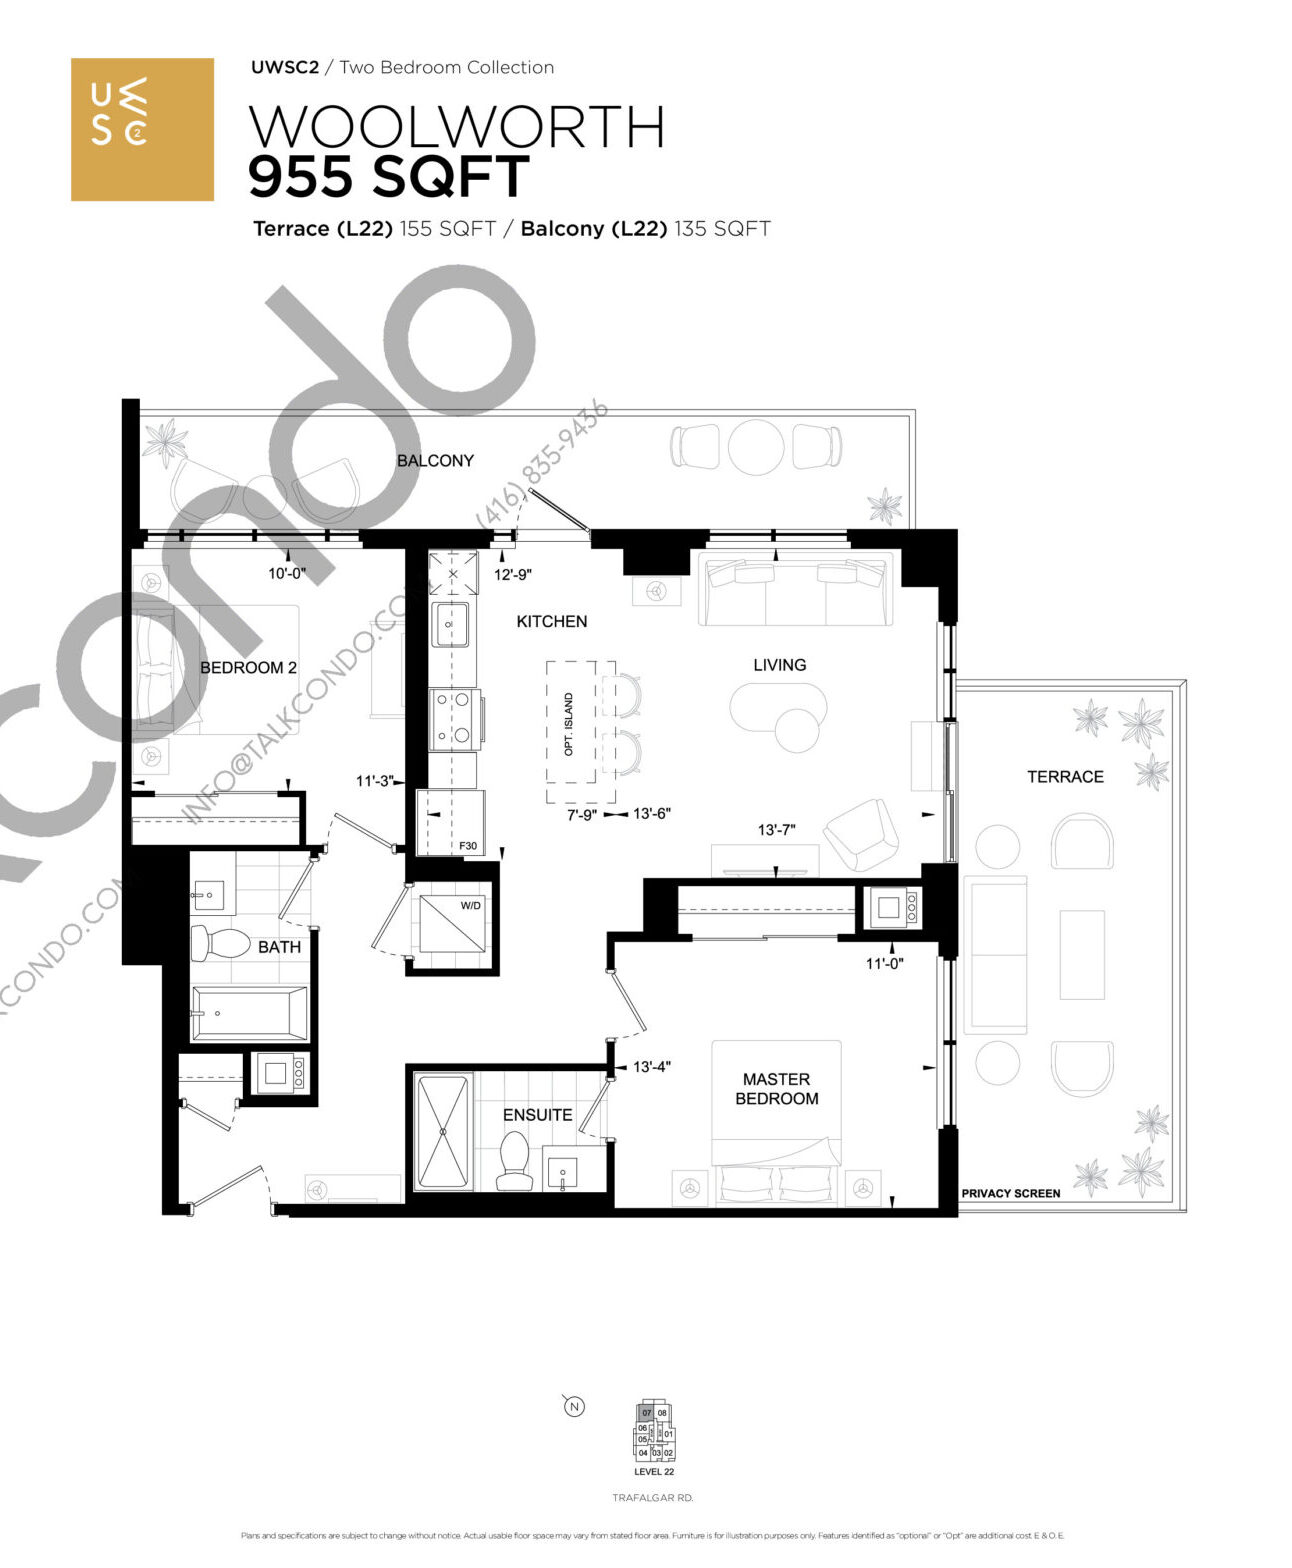 Woolworth Floor Plan at Upper West Side Condos 2 - 955 sq.ft